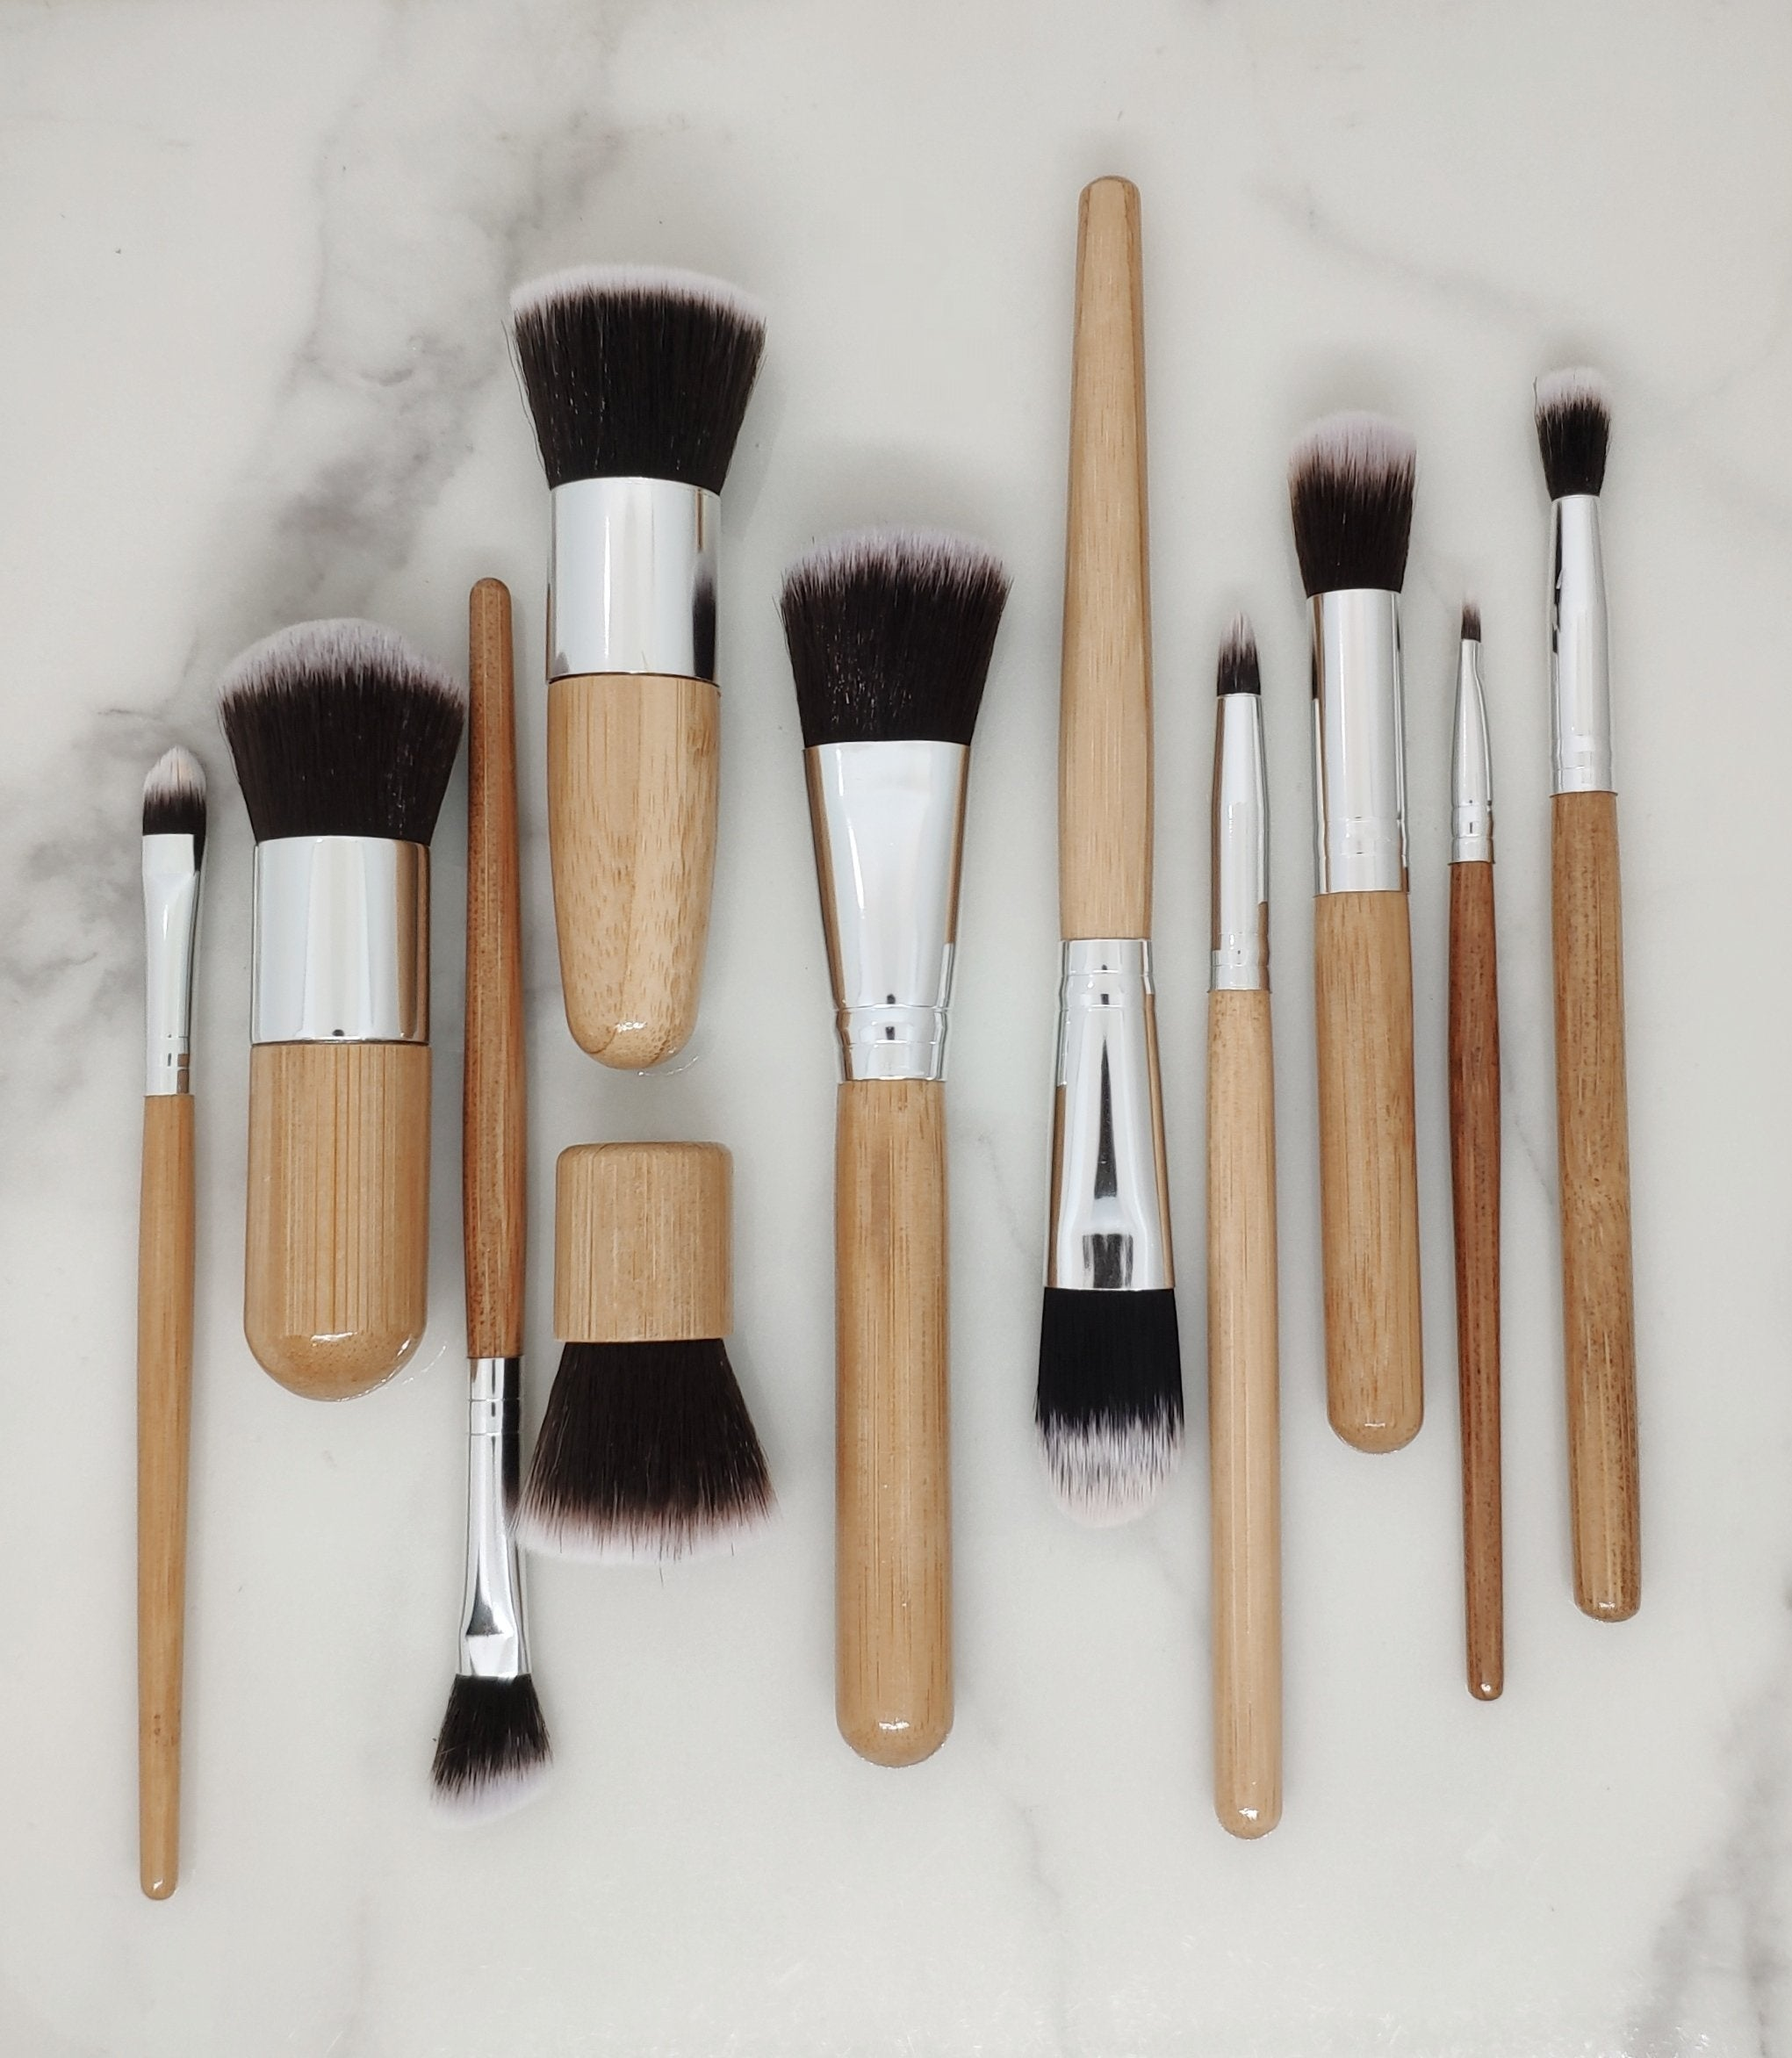 PERSONAL MAKEUP BRUSHES